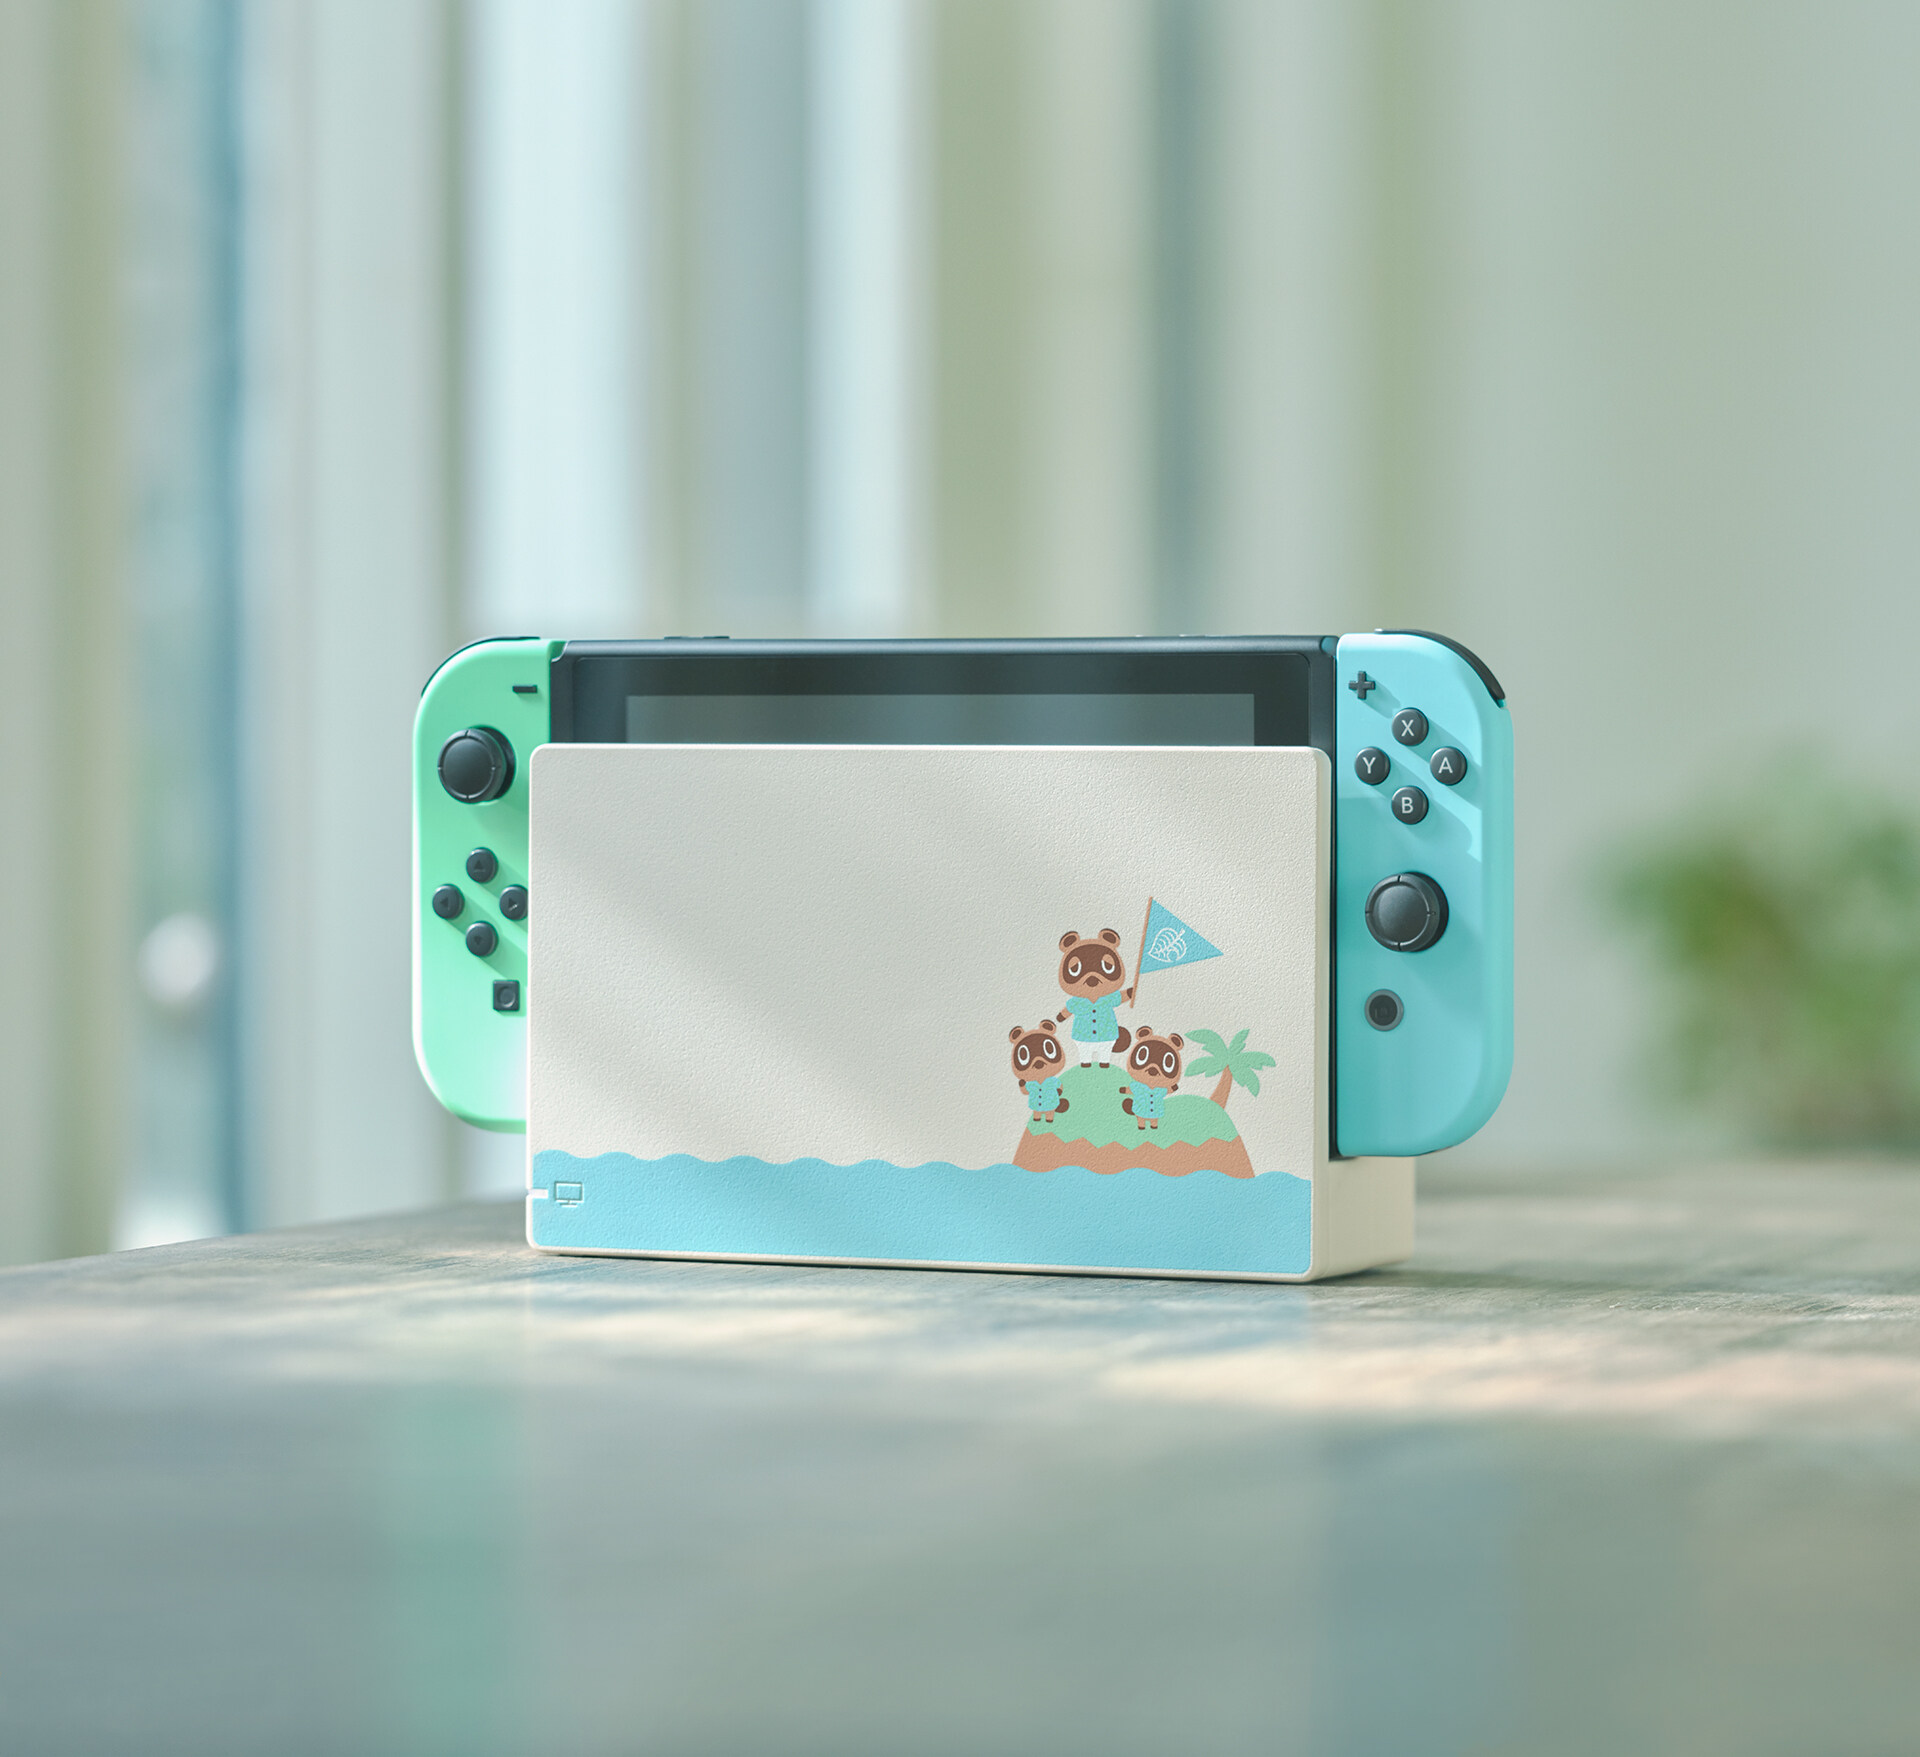 [NEW ARRIVAL] NINTENDO SWITCH CONSOLE – MARIO RED & BLUE EDITION (MAXSOFT) / ENHANCED EDITION - ANIMAL CROSSING CONSOLE: NEW HORIZONS EDITION (WITHOUT GAME)**MAXSOFT SET 1 Year Maxsoft Warranty